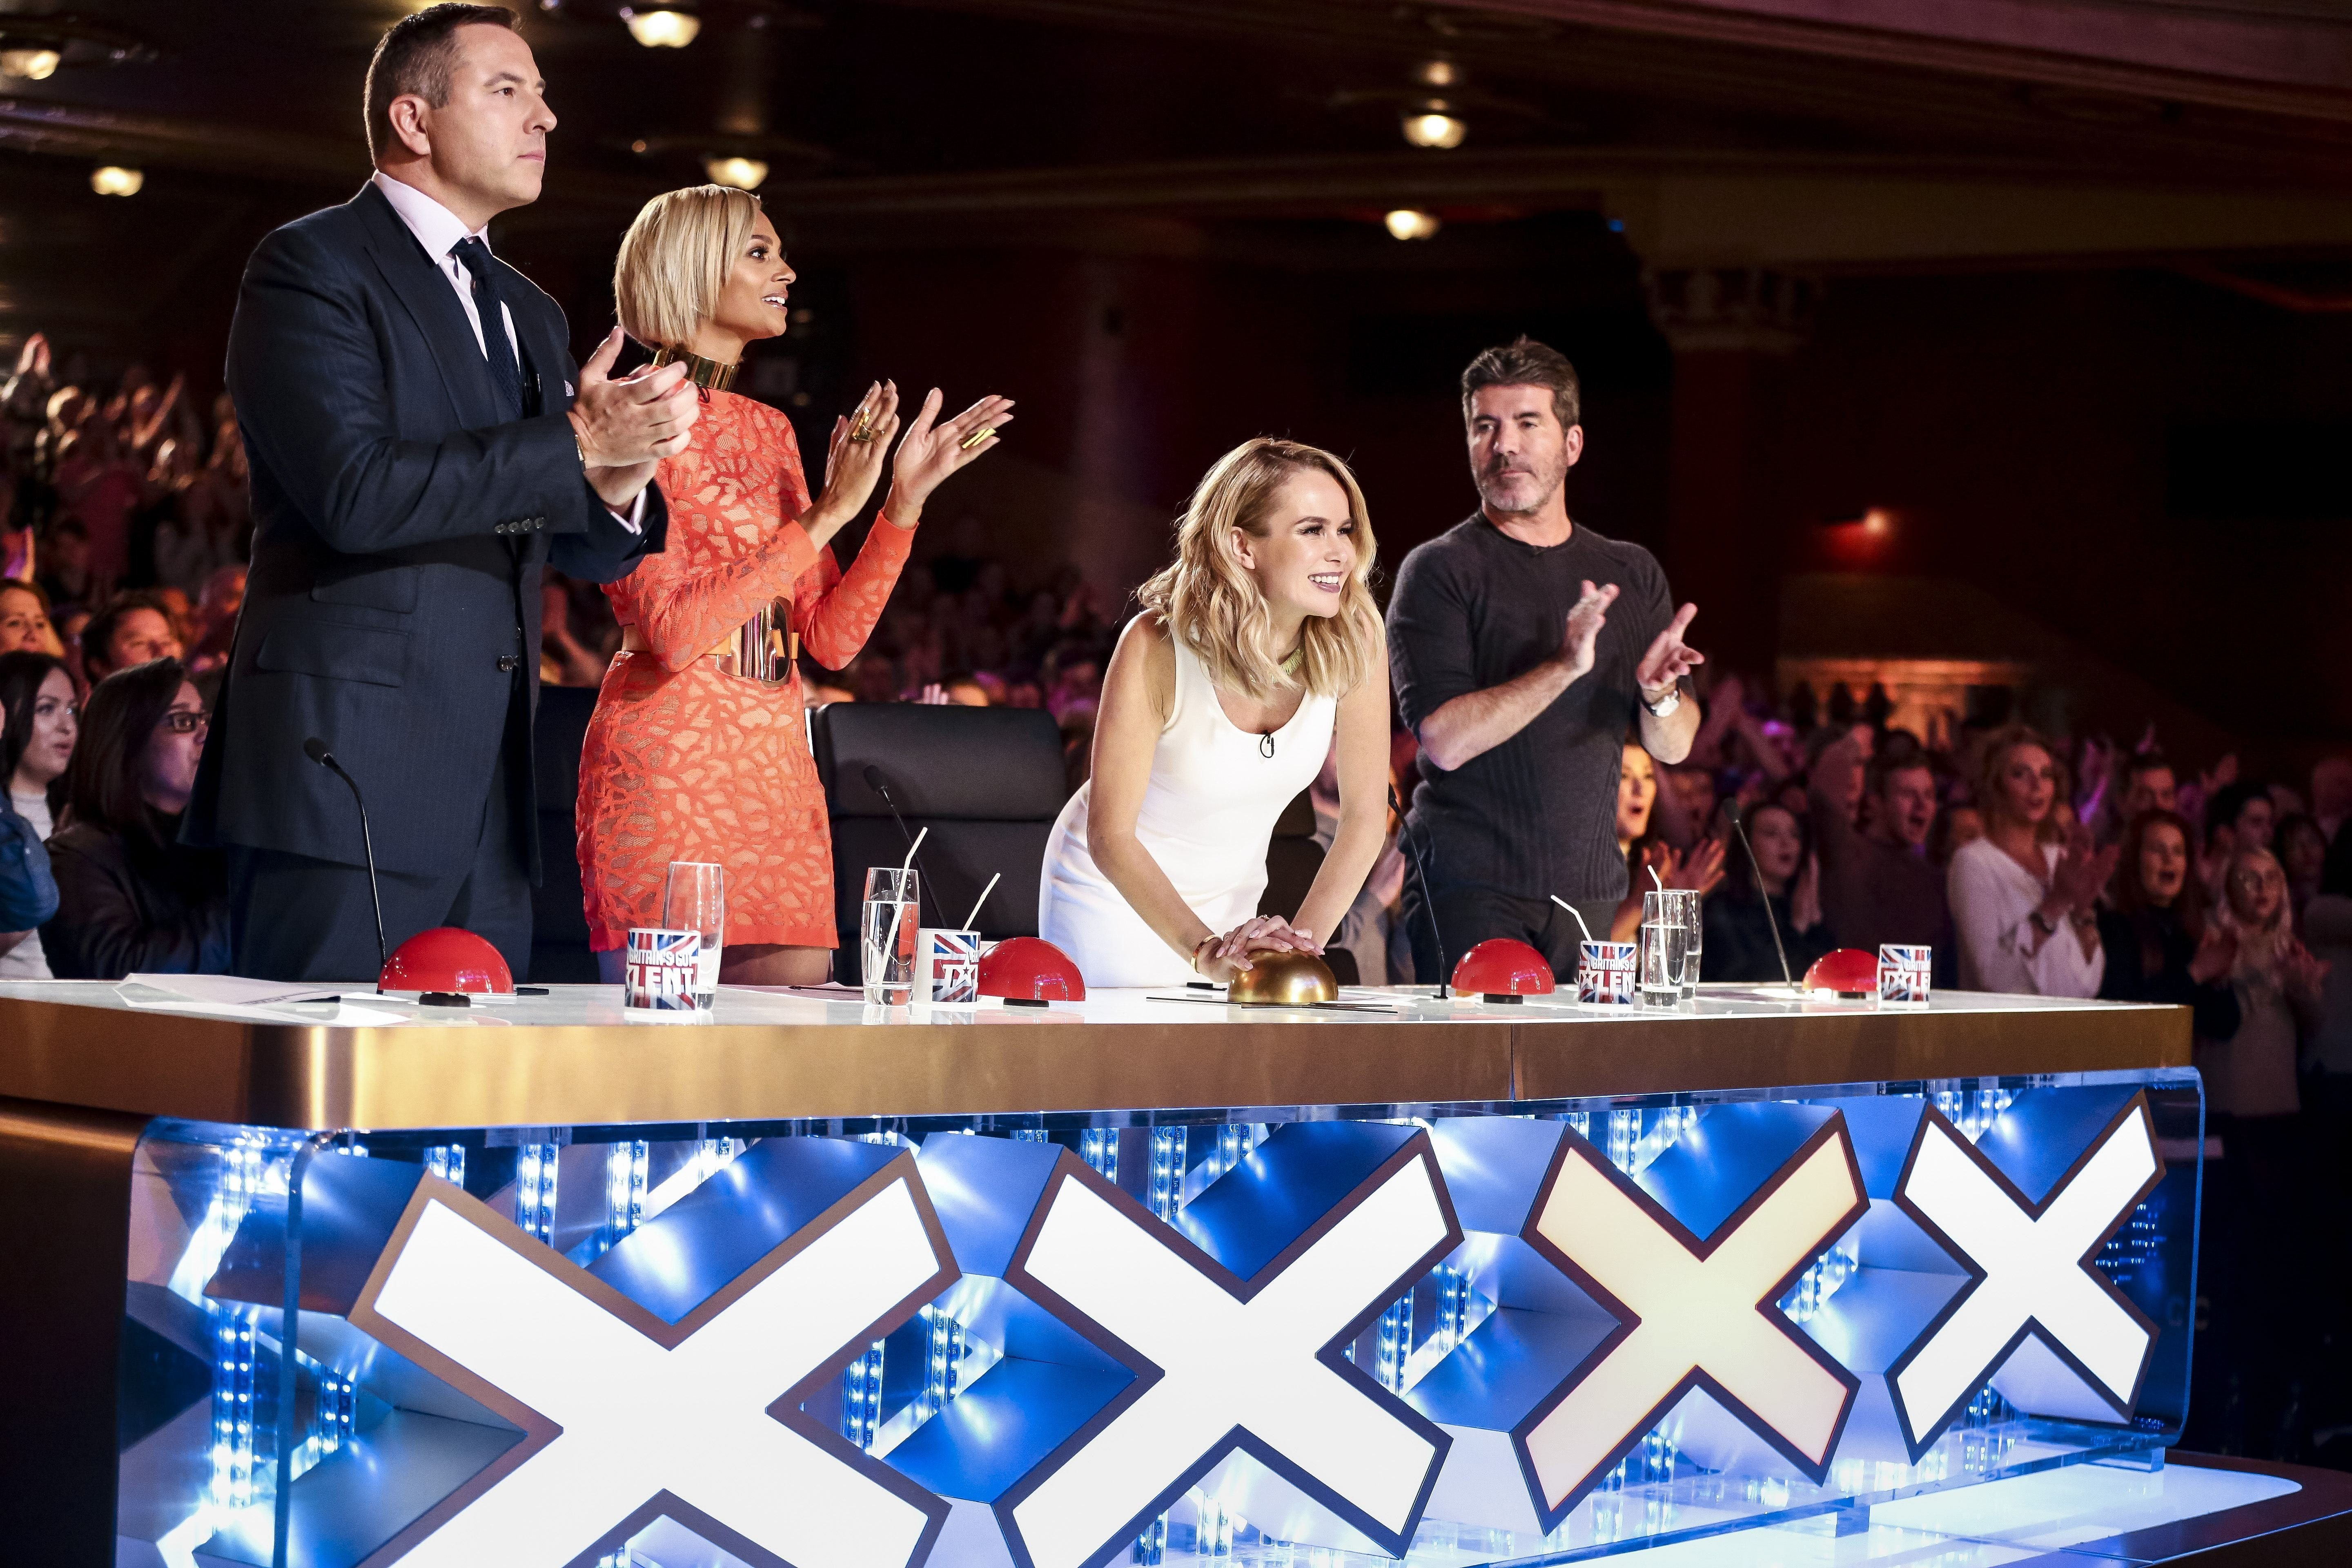 There's A Big Change Coming To This Year's 'Britain's Got Talent' Live